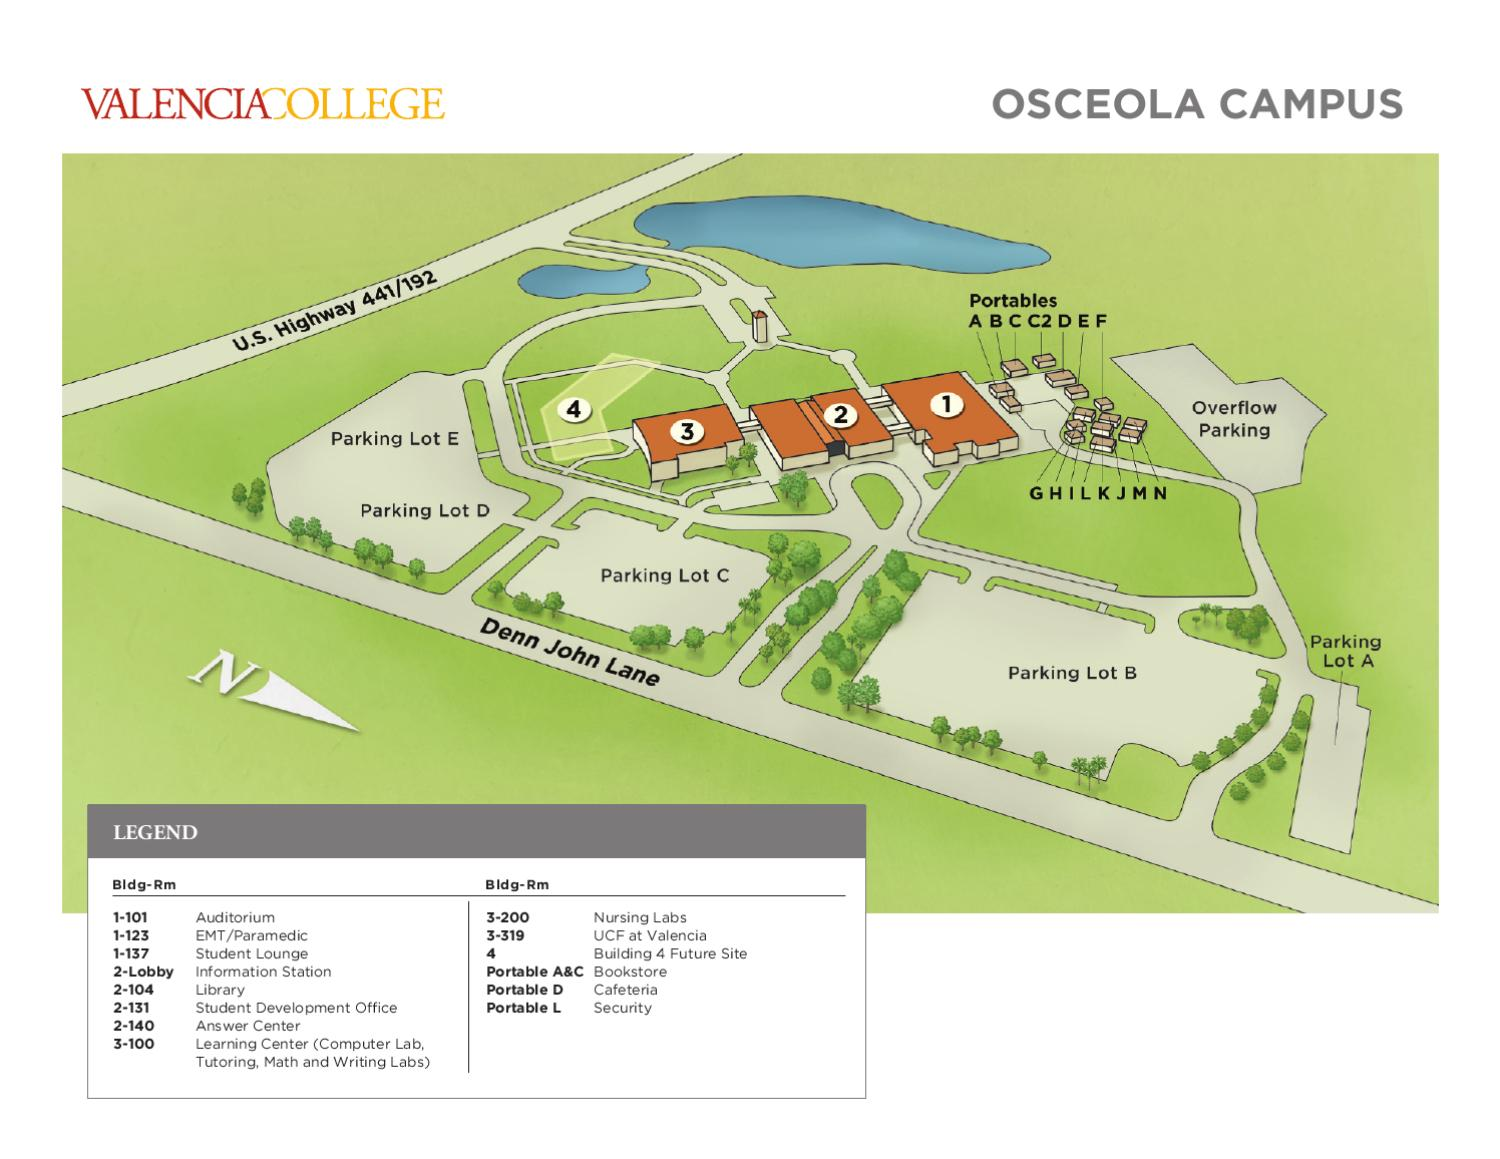 Valencia College Campus Map Osceola by Valencia College   issuu